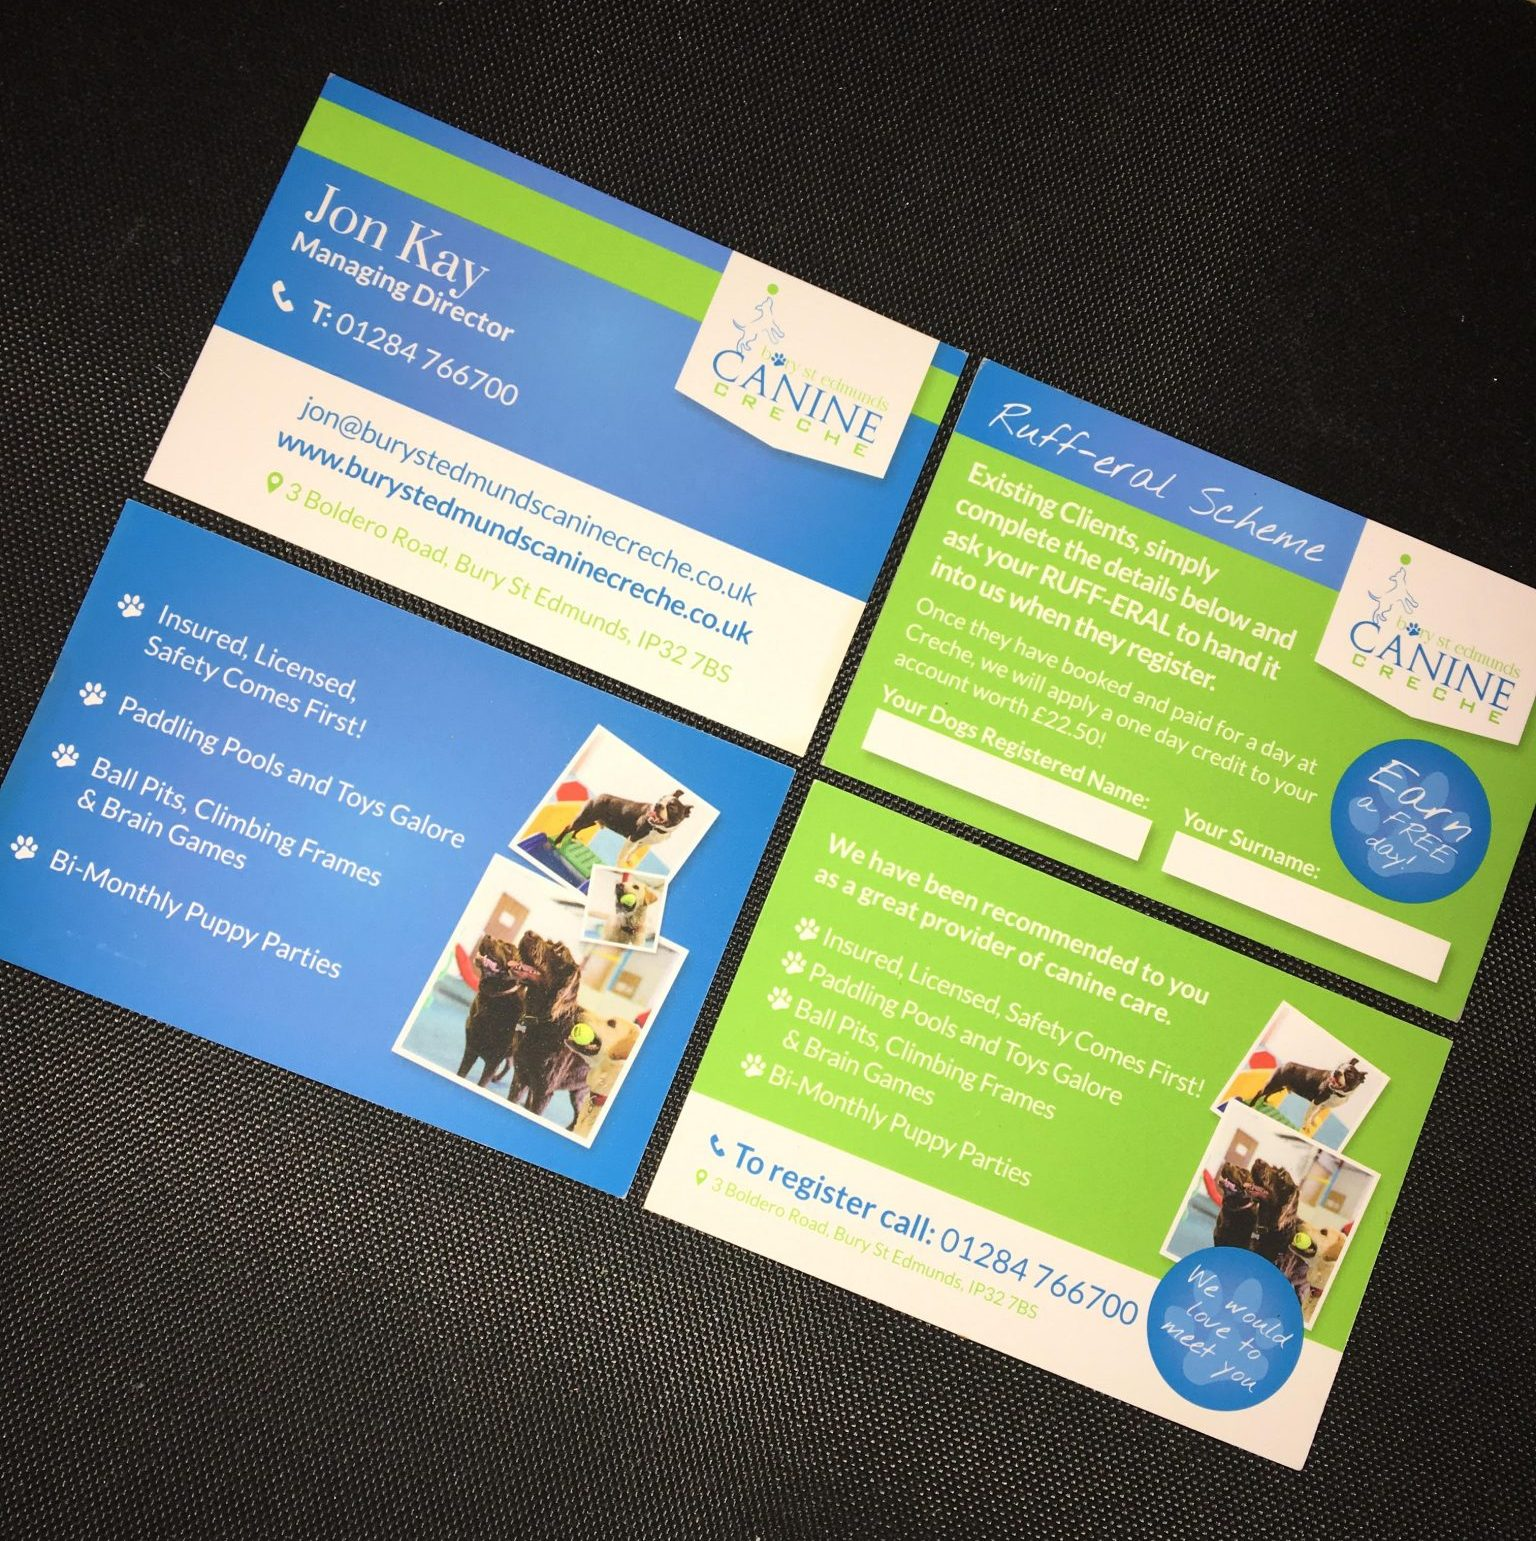 Canine Creche Business Cards!